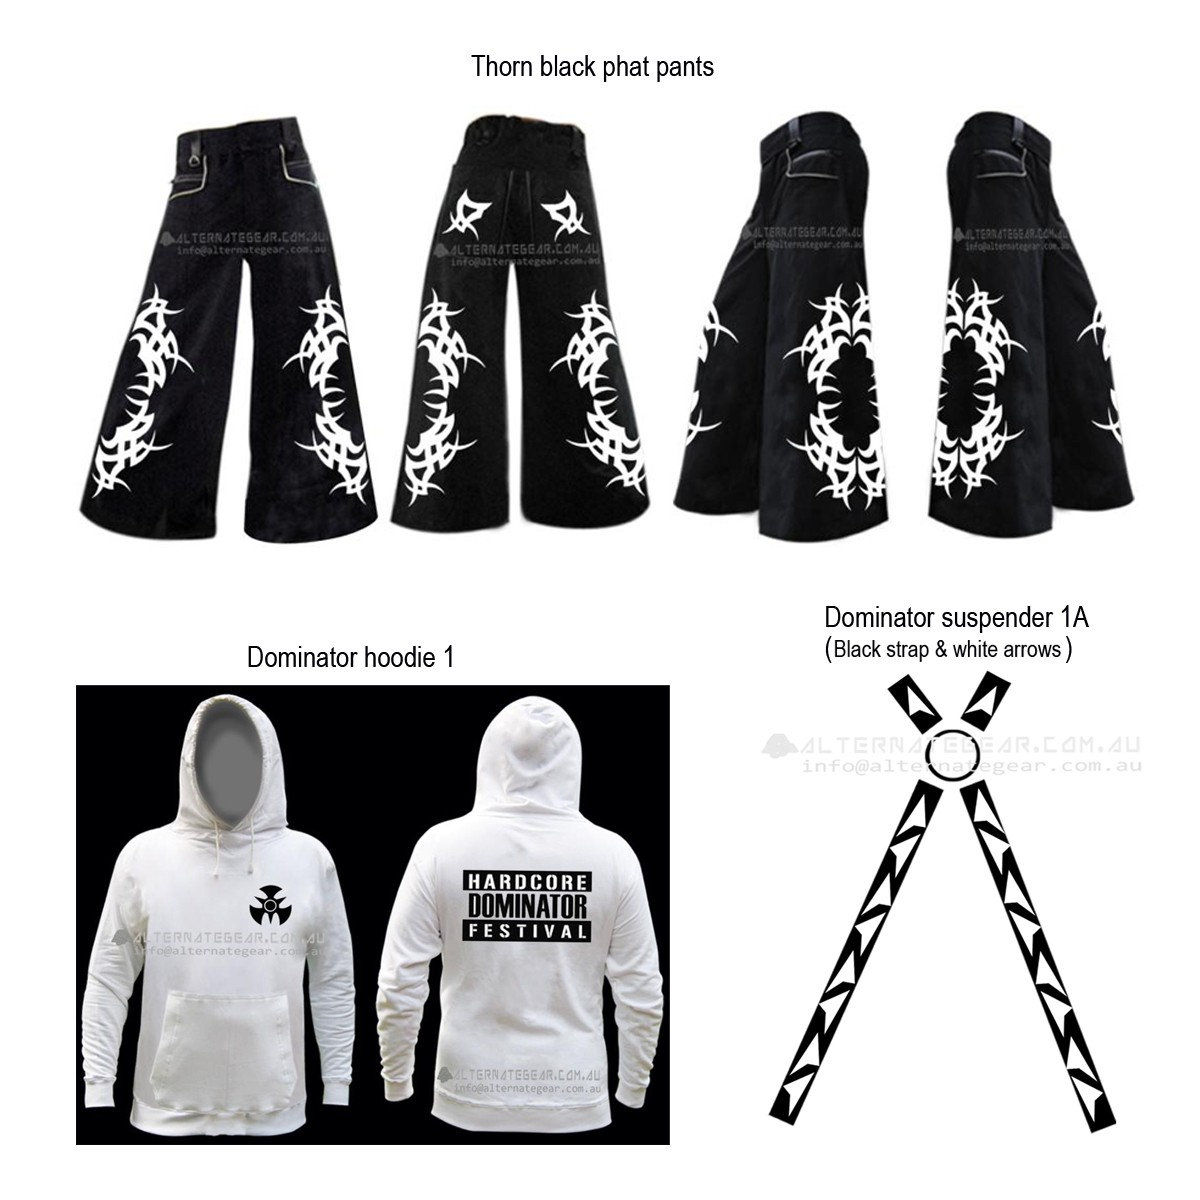 Thorn bundle - phat pants, hooodie & suspenders